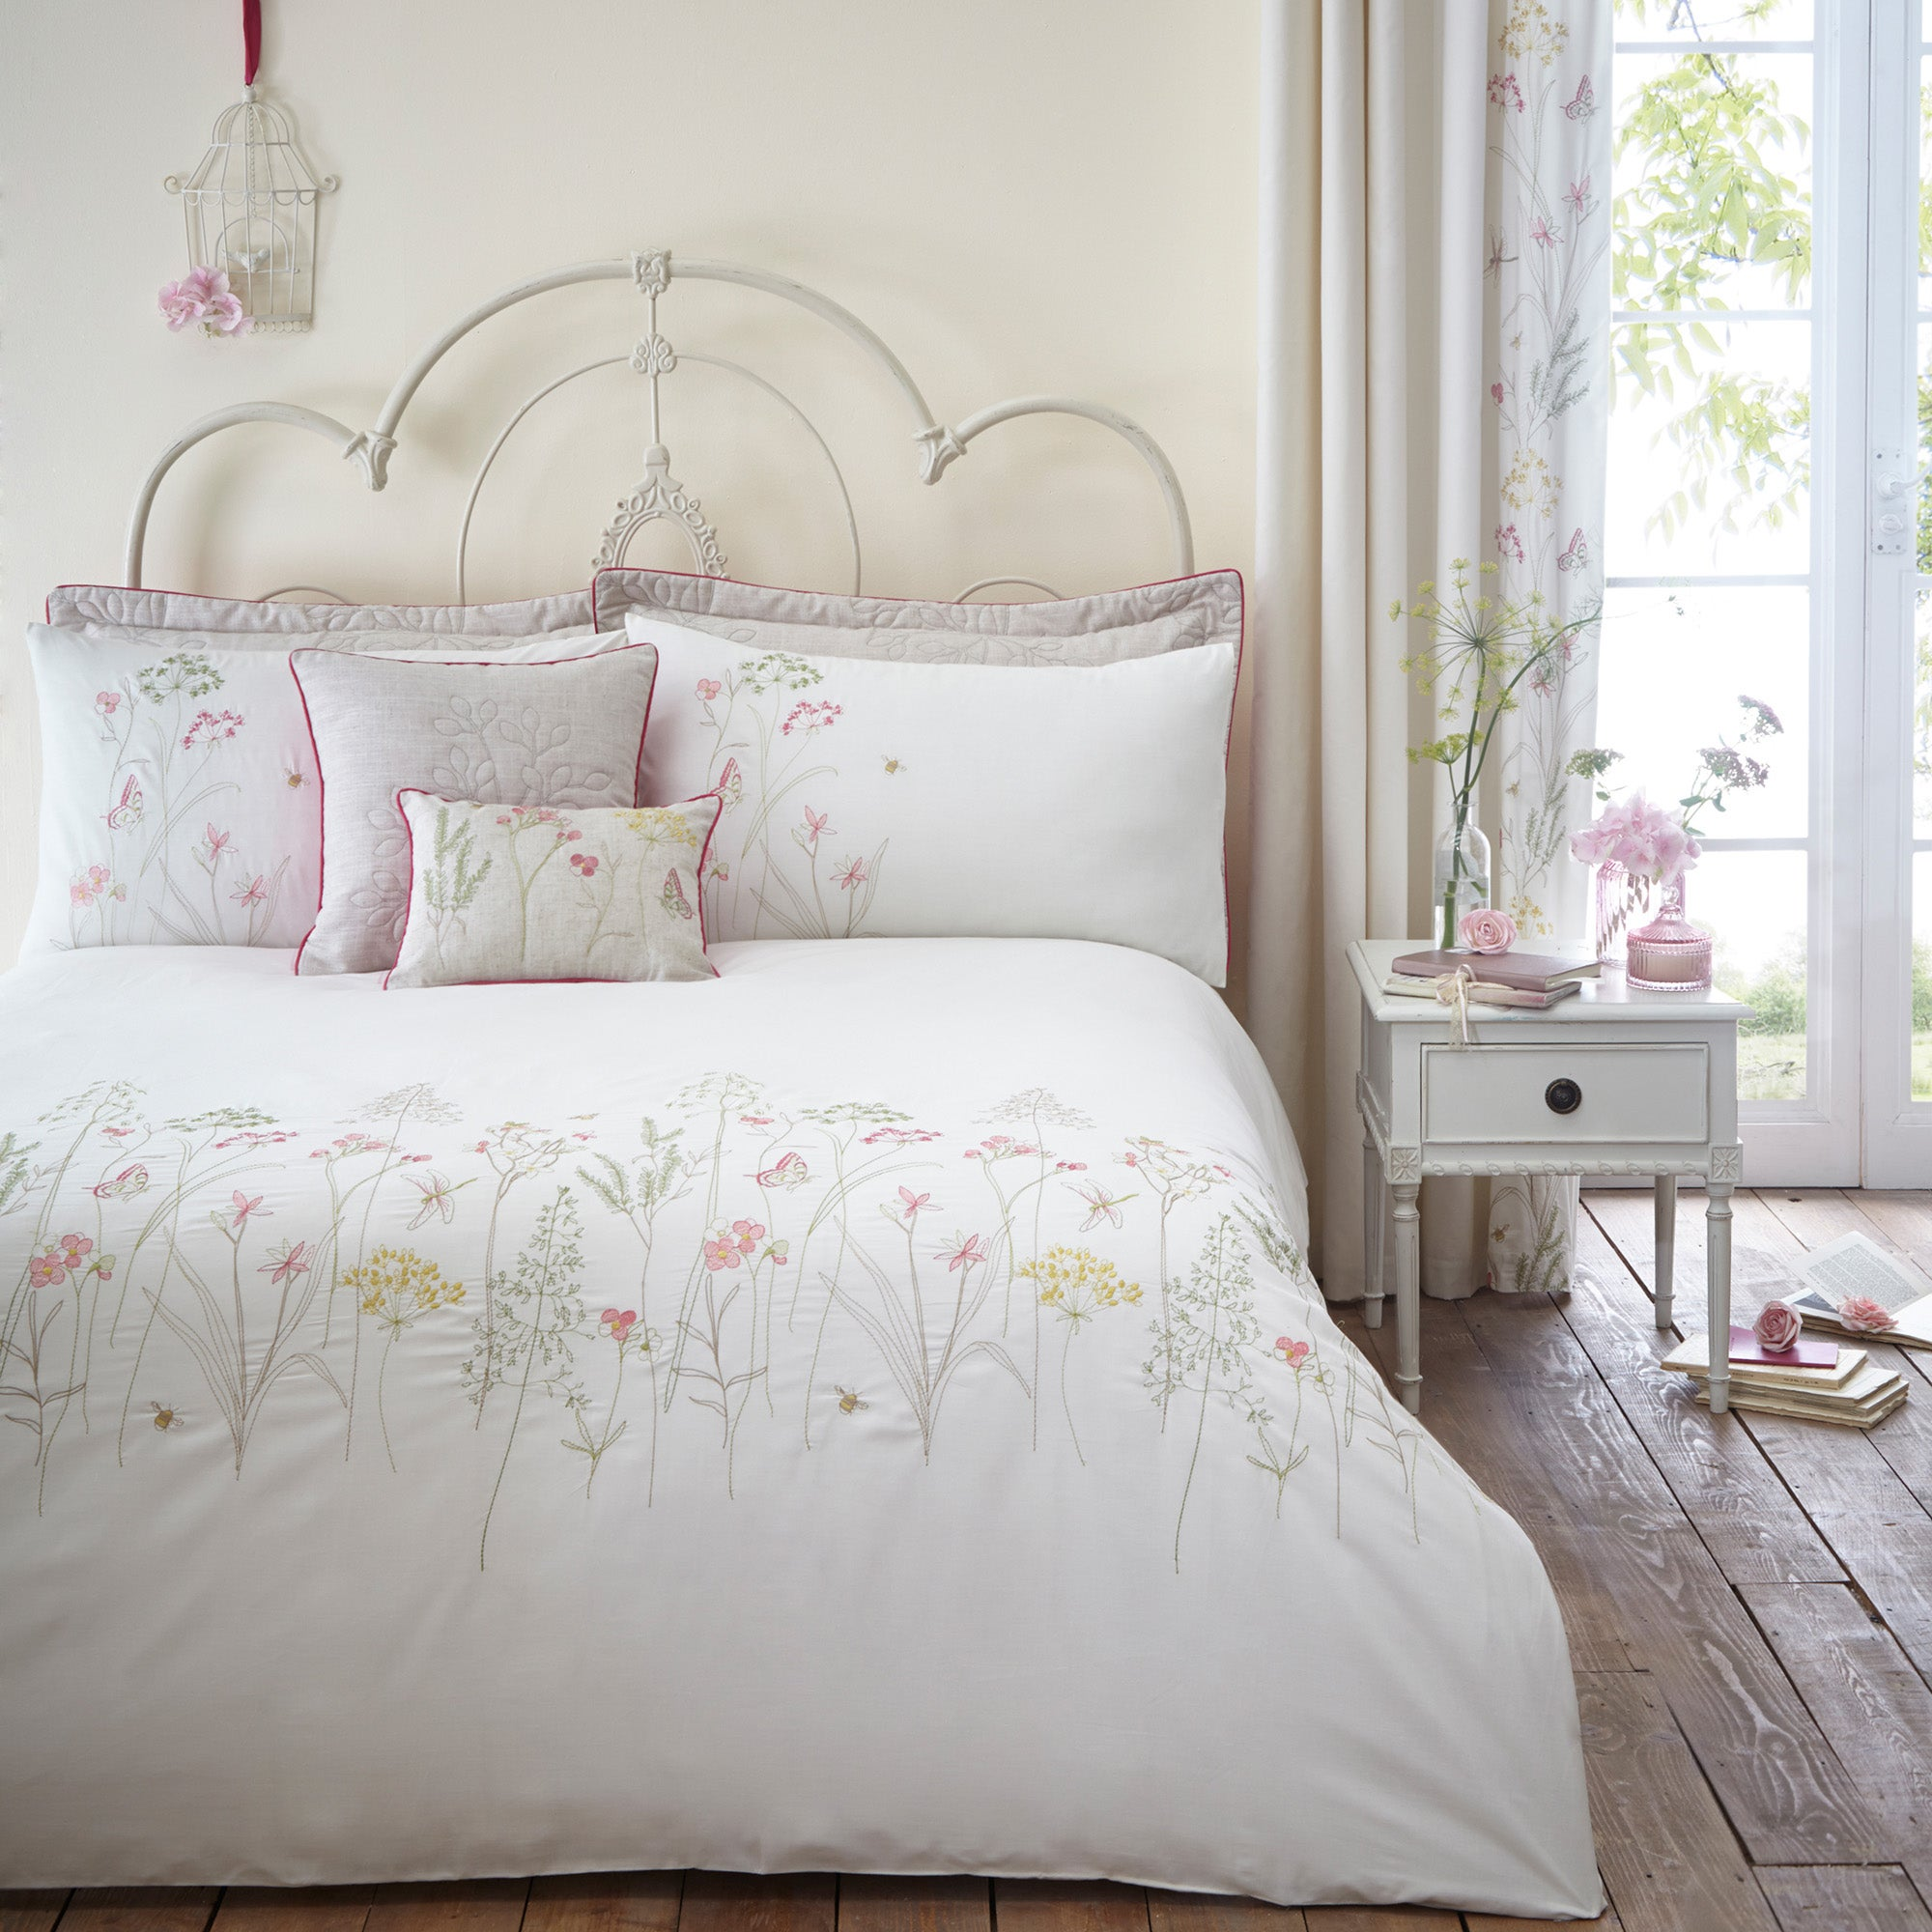 Botanical Gardens Natural Bed Linen Collection